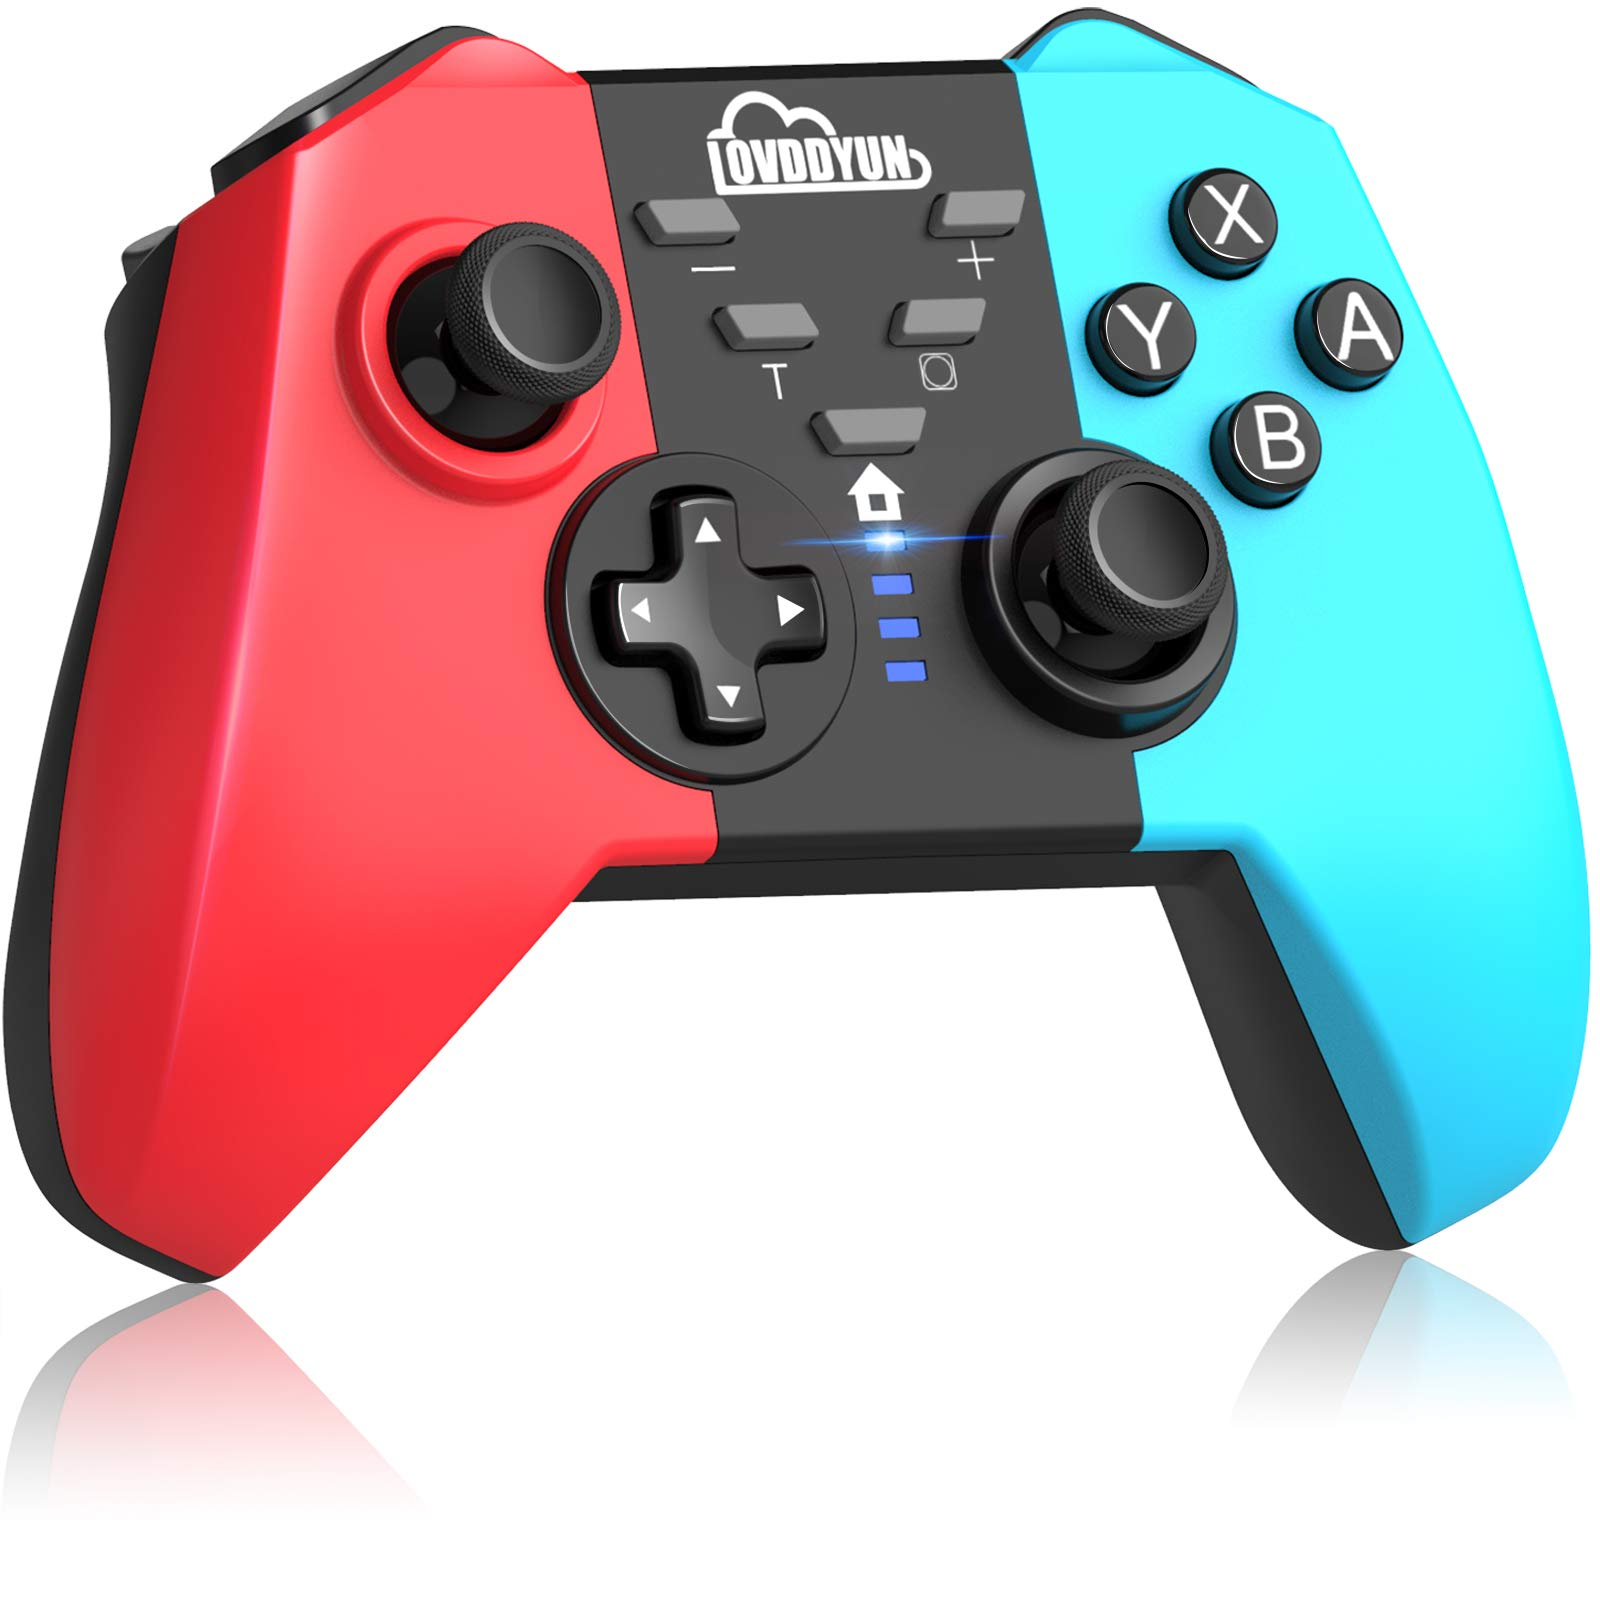 Wireless Pro Controller for Switch/Switch Lite, Professional Controller Support Turbo, One-Key Connection, Dual Motors, Dual Shock, Gyro Axis, Gamepad Joystick for Switch Console